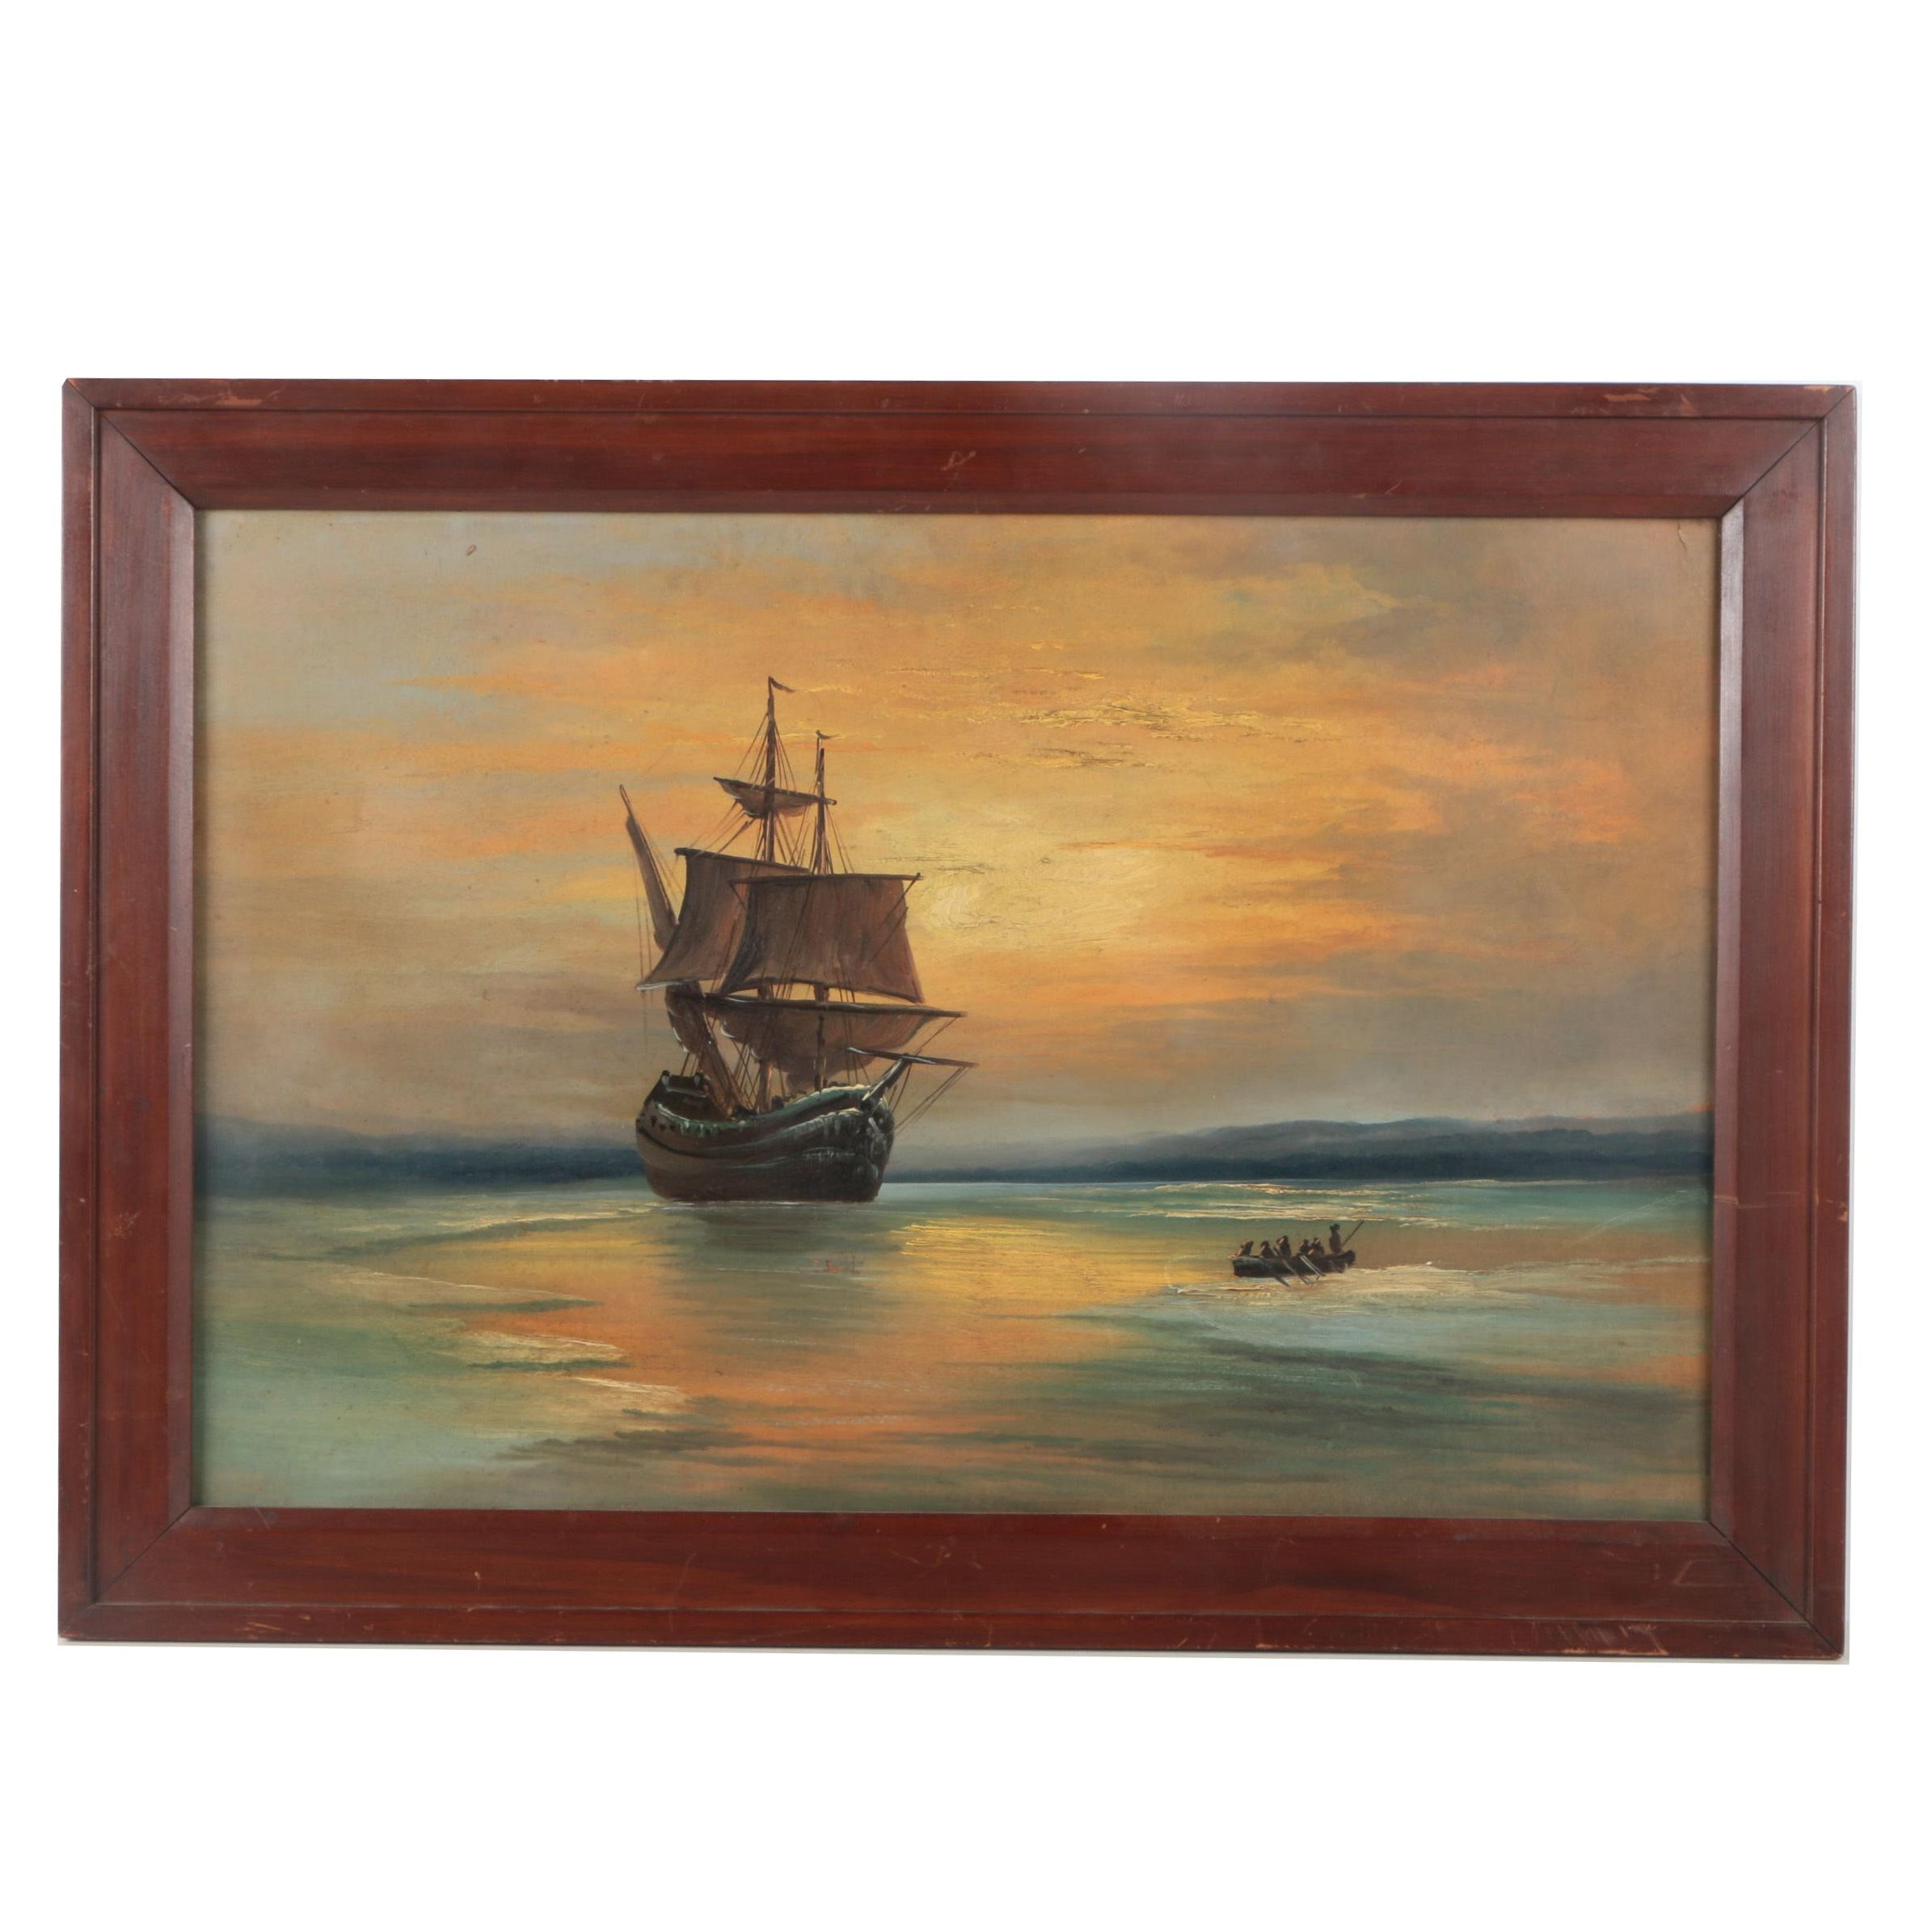 Oil Painting on Panel of a Ship at Sunset